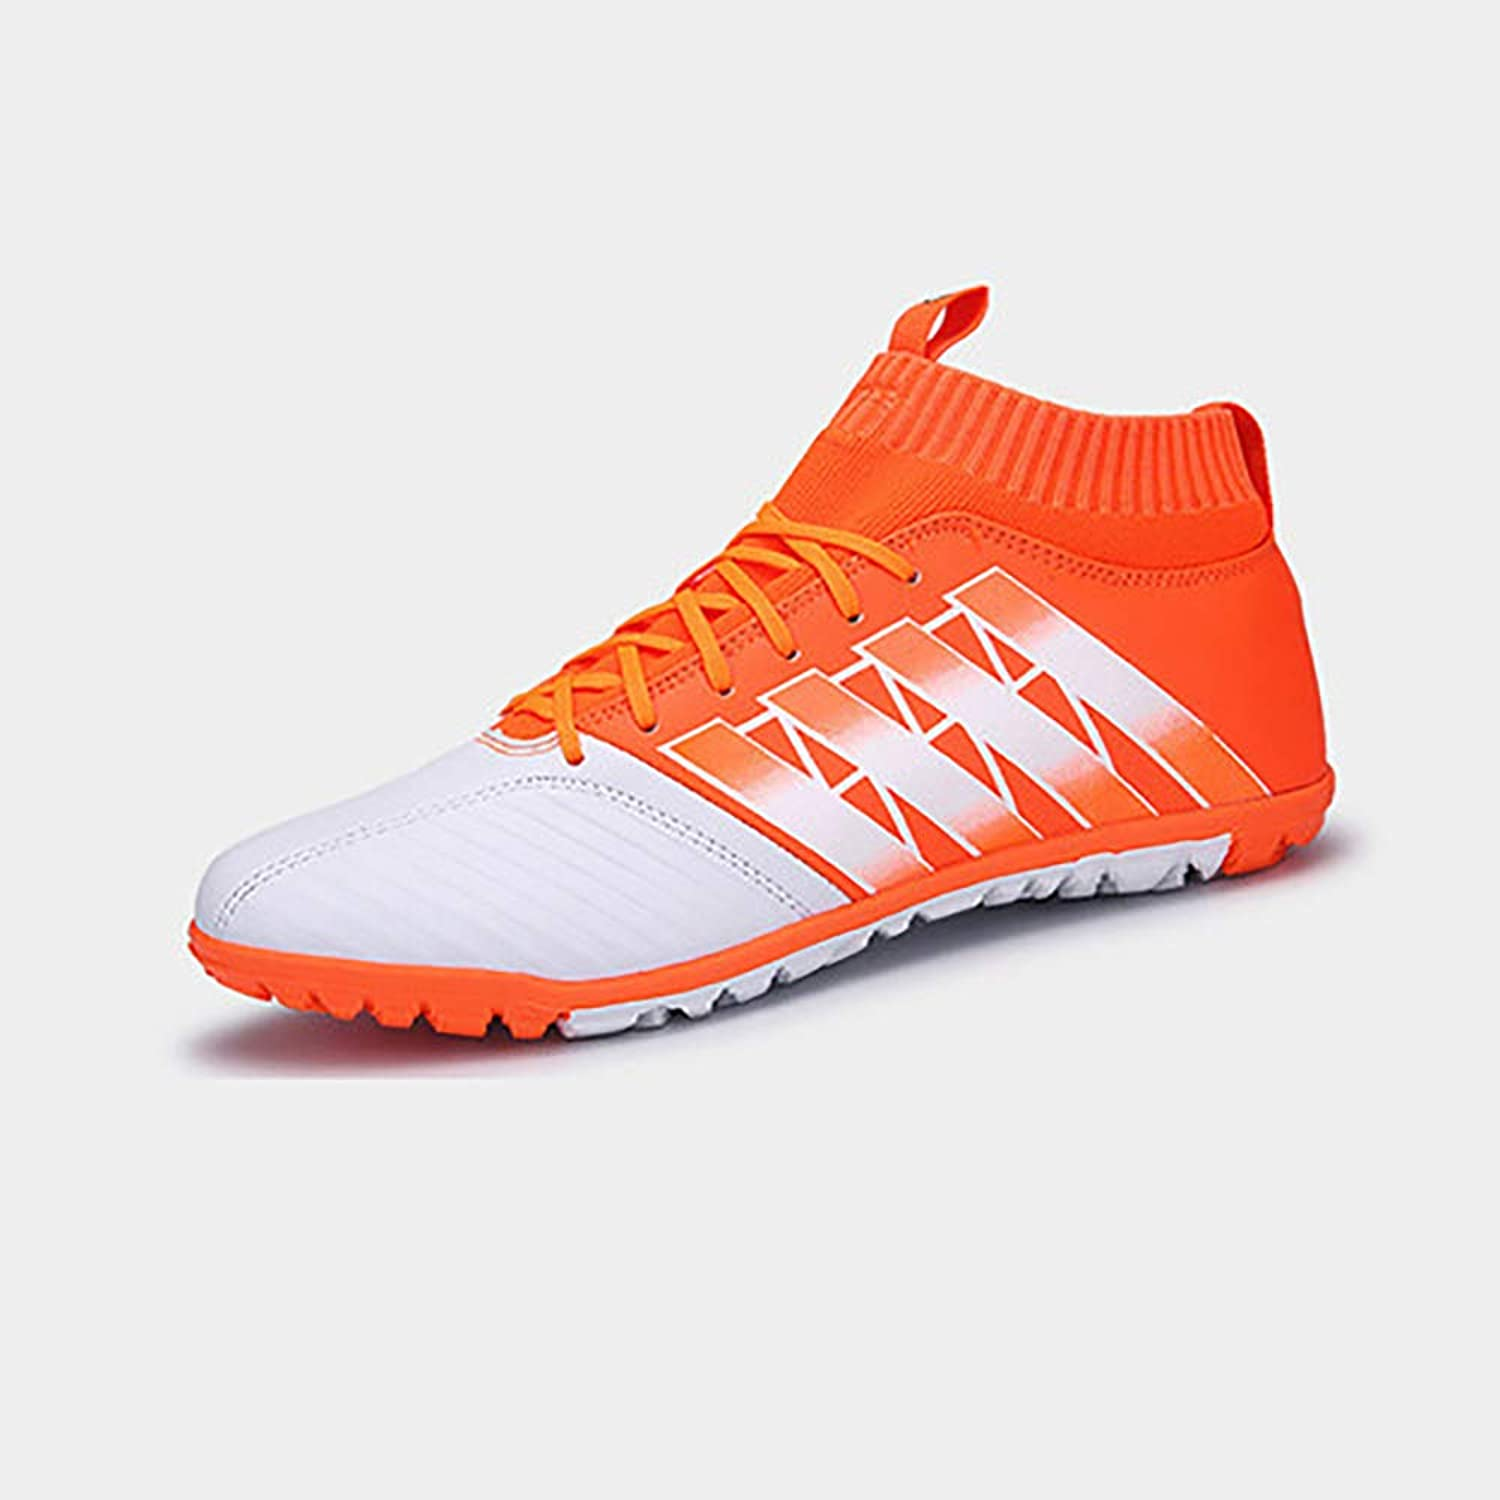 EUR Size 35-44 Men Original High Ankle Football Boots Turf Indoor Soccer shoes Sneakers Football Training shoes Comfortable and Breathable